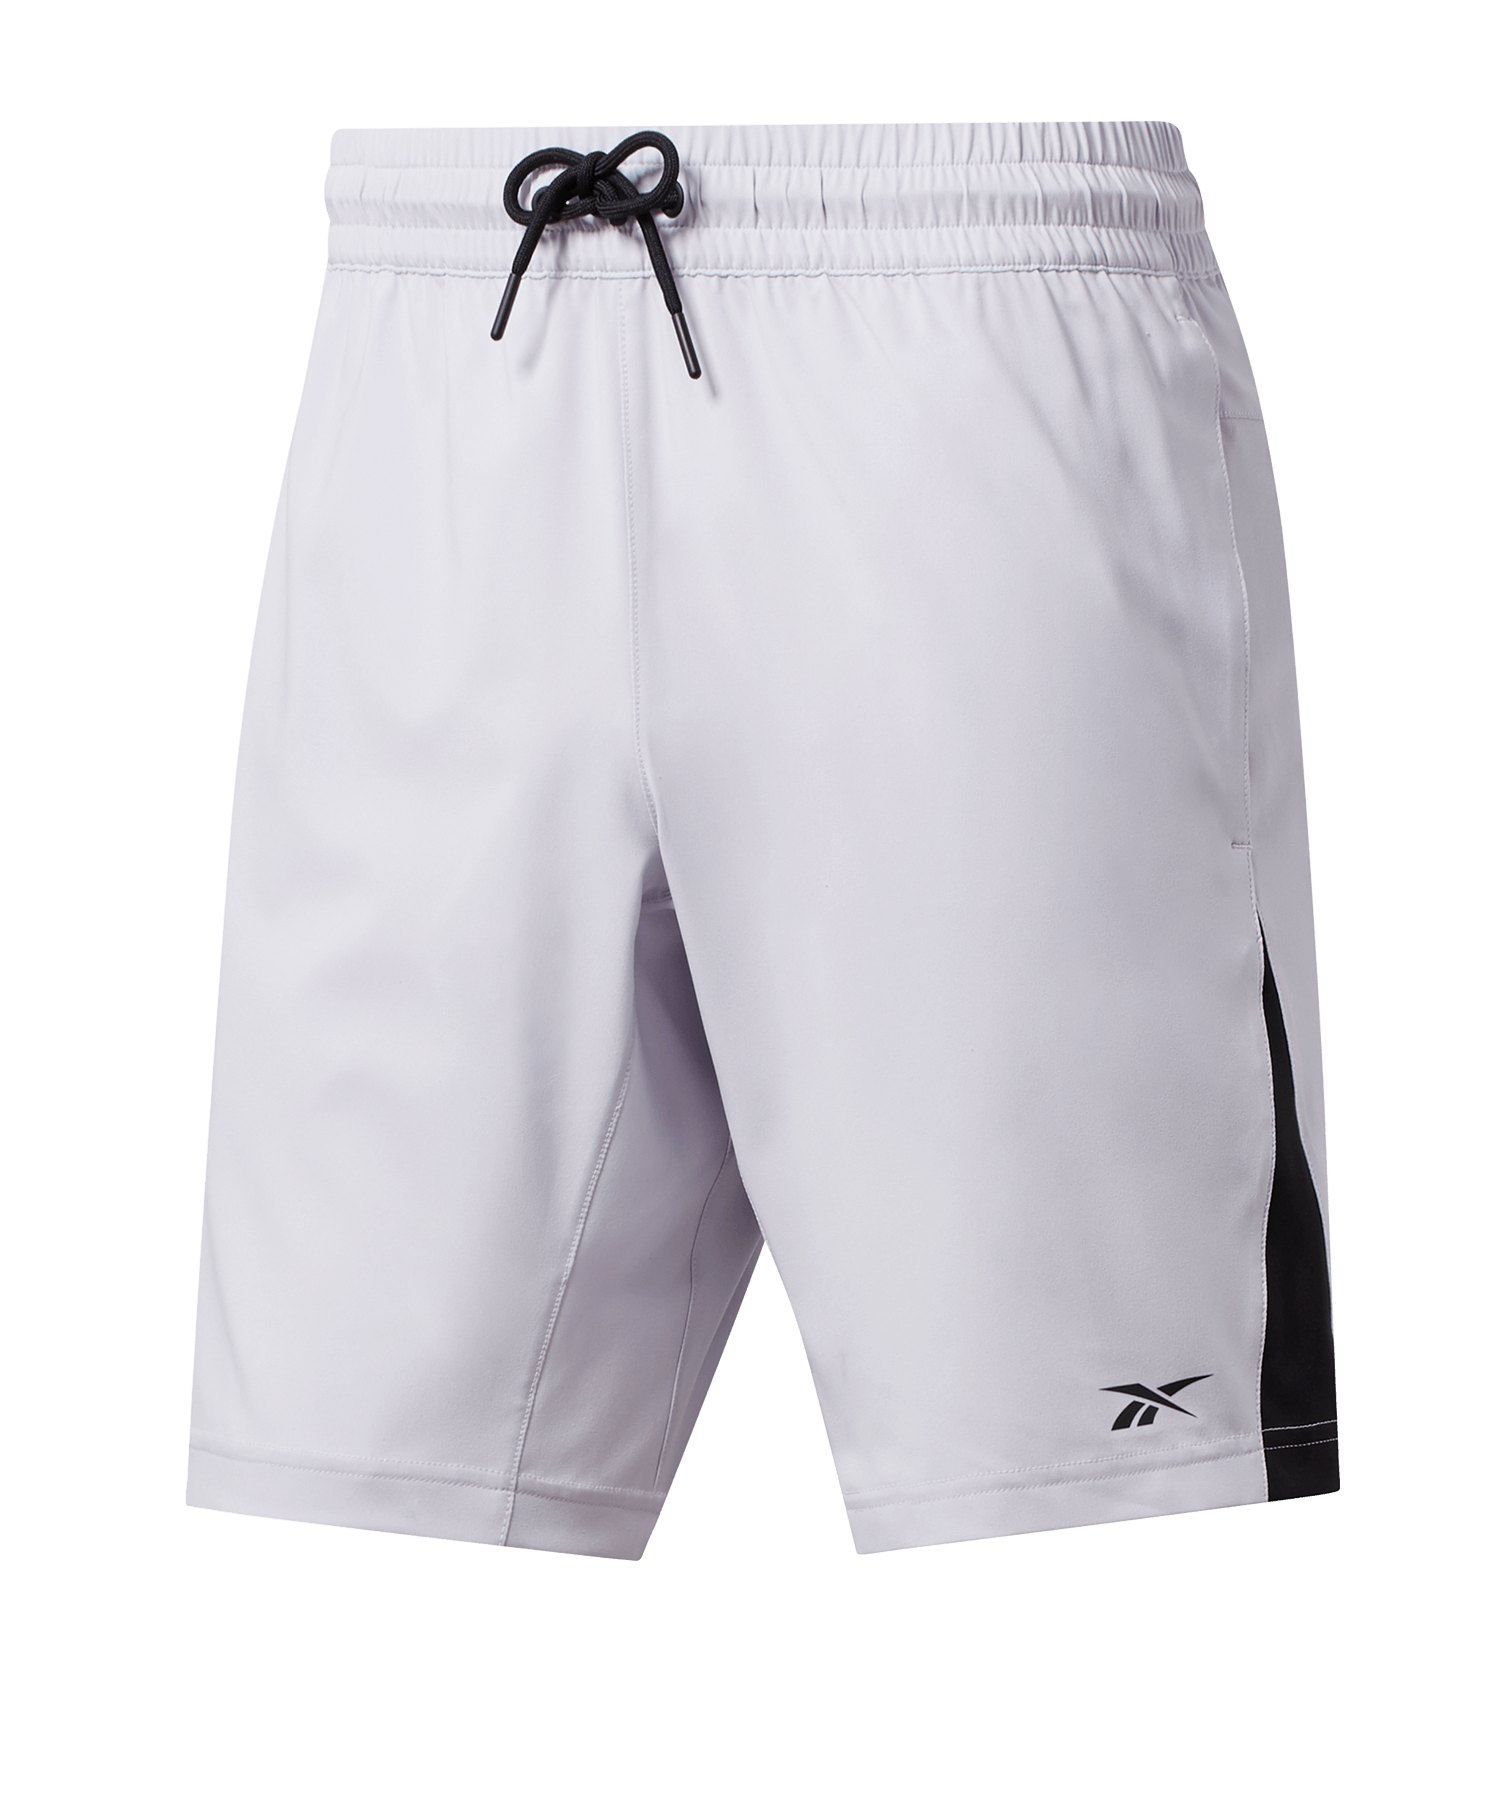 Reebok Workout Ready Woven Short Grau - grau